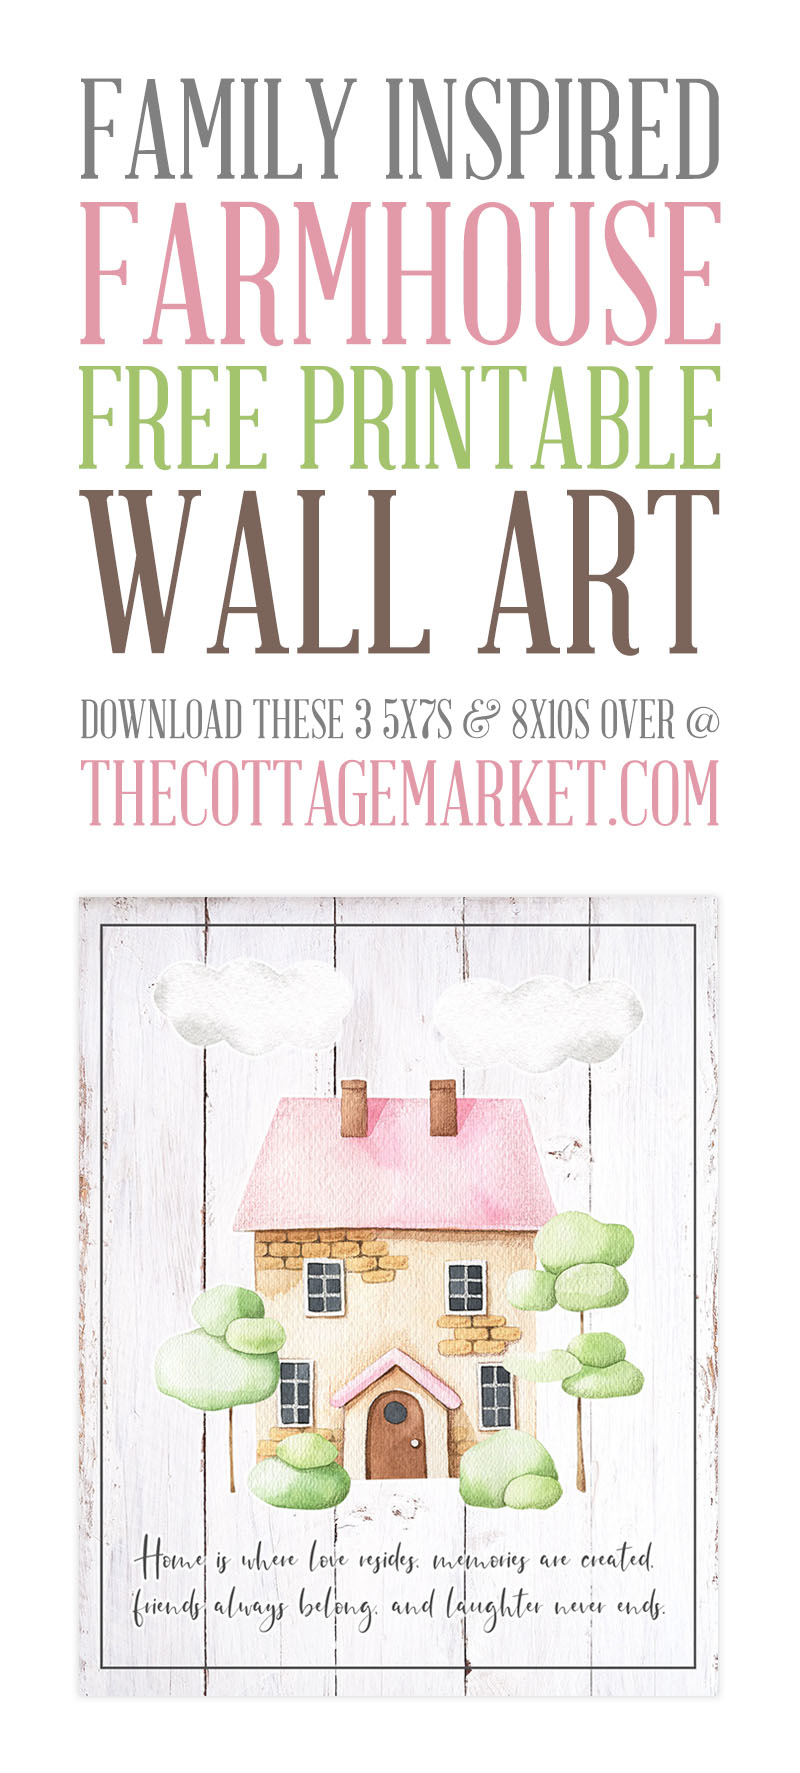 Family Inspired Farmhouse Free Printable Wall Art might just be exactly what your Gallery Wall, Vignette or Bulletin Board needs!